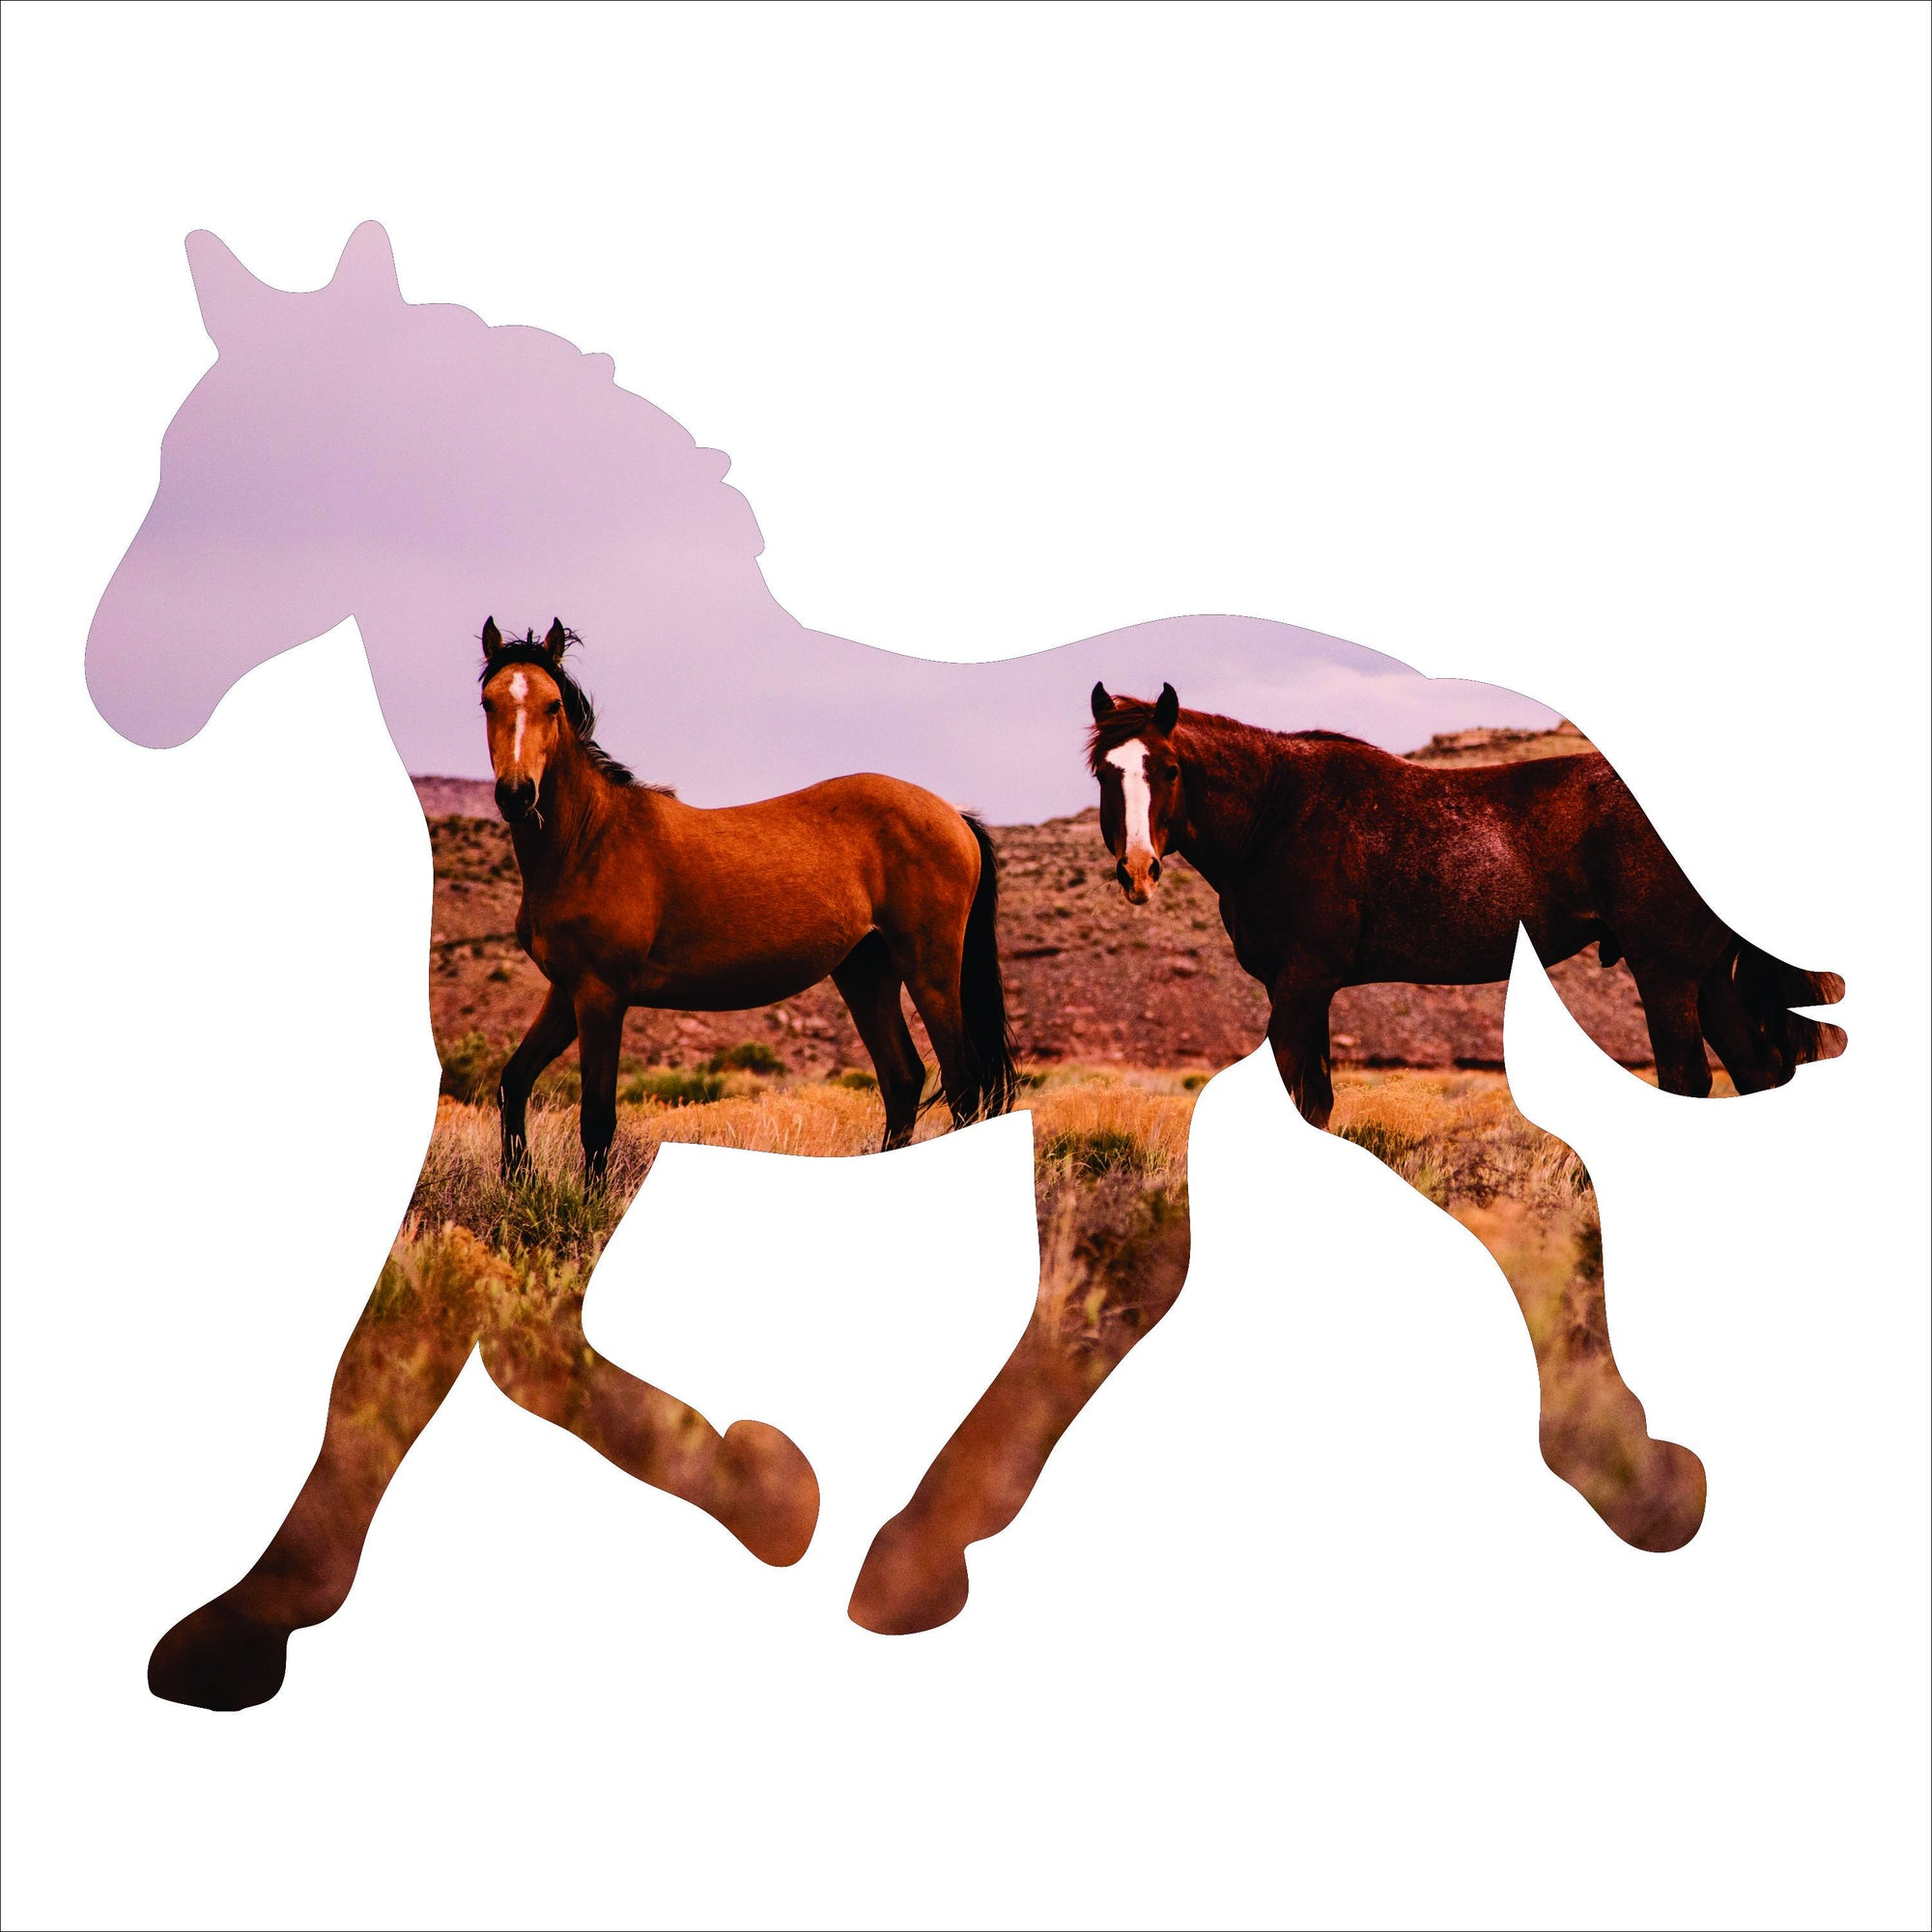 Home Decor - Horse Silhouette Imagery Sign